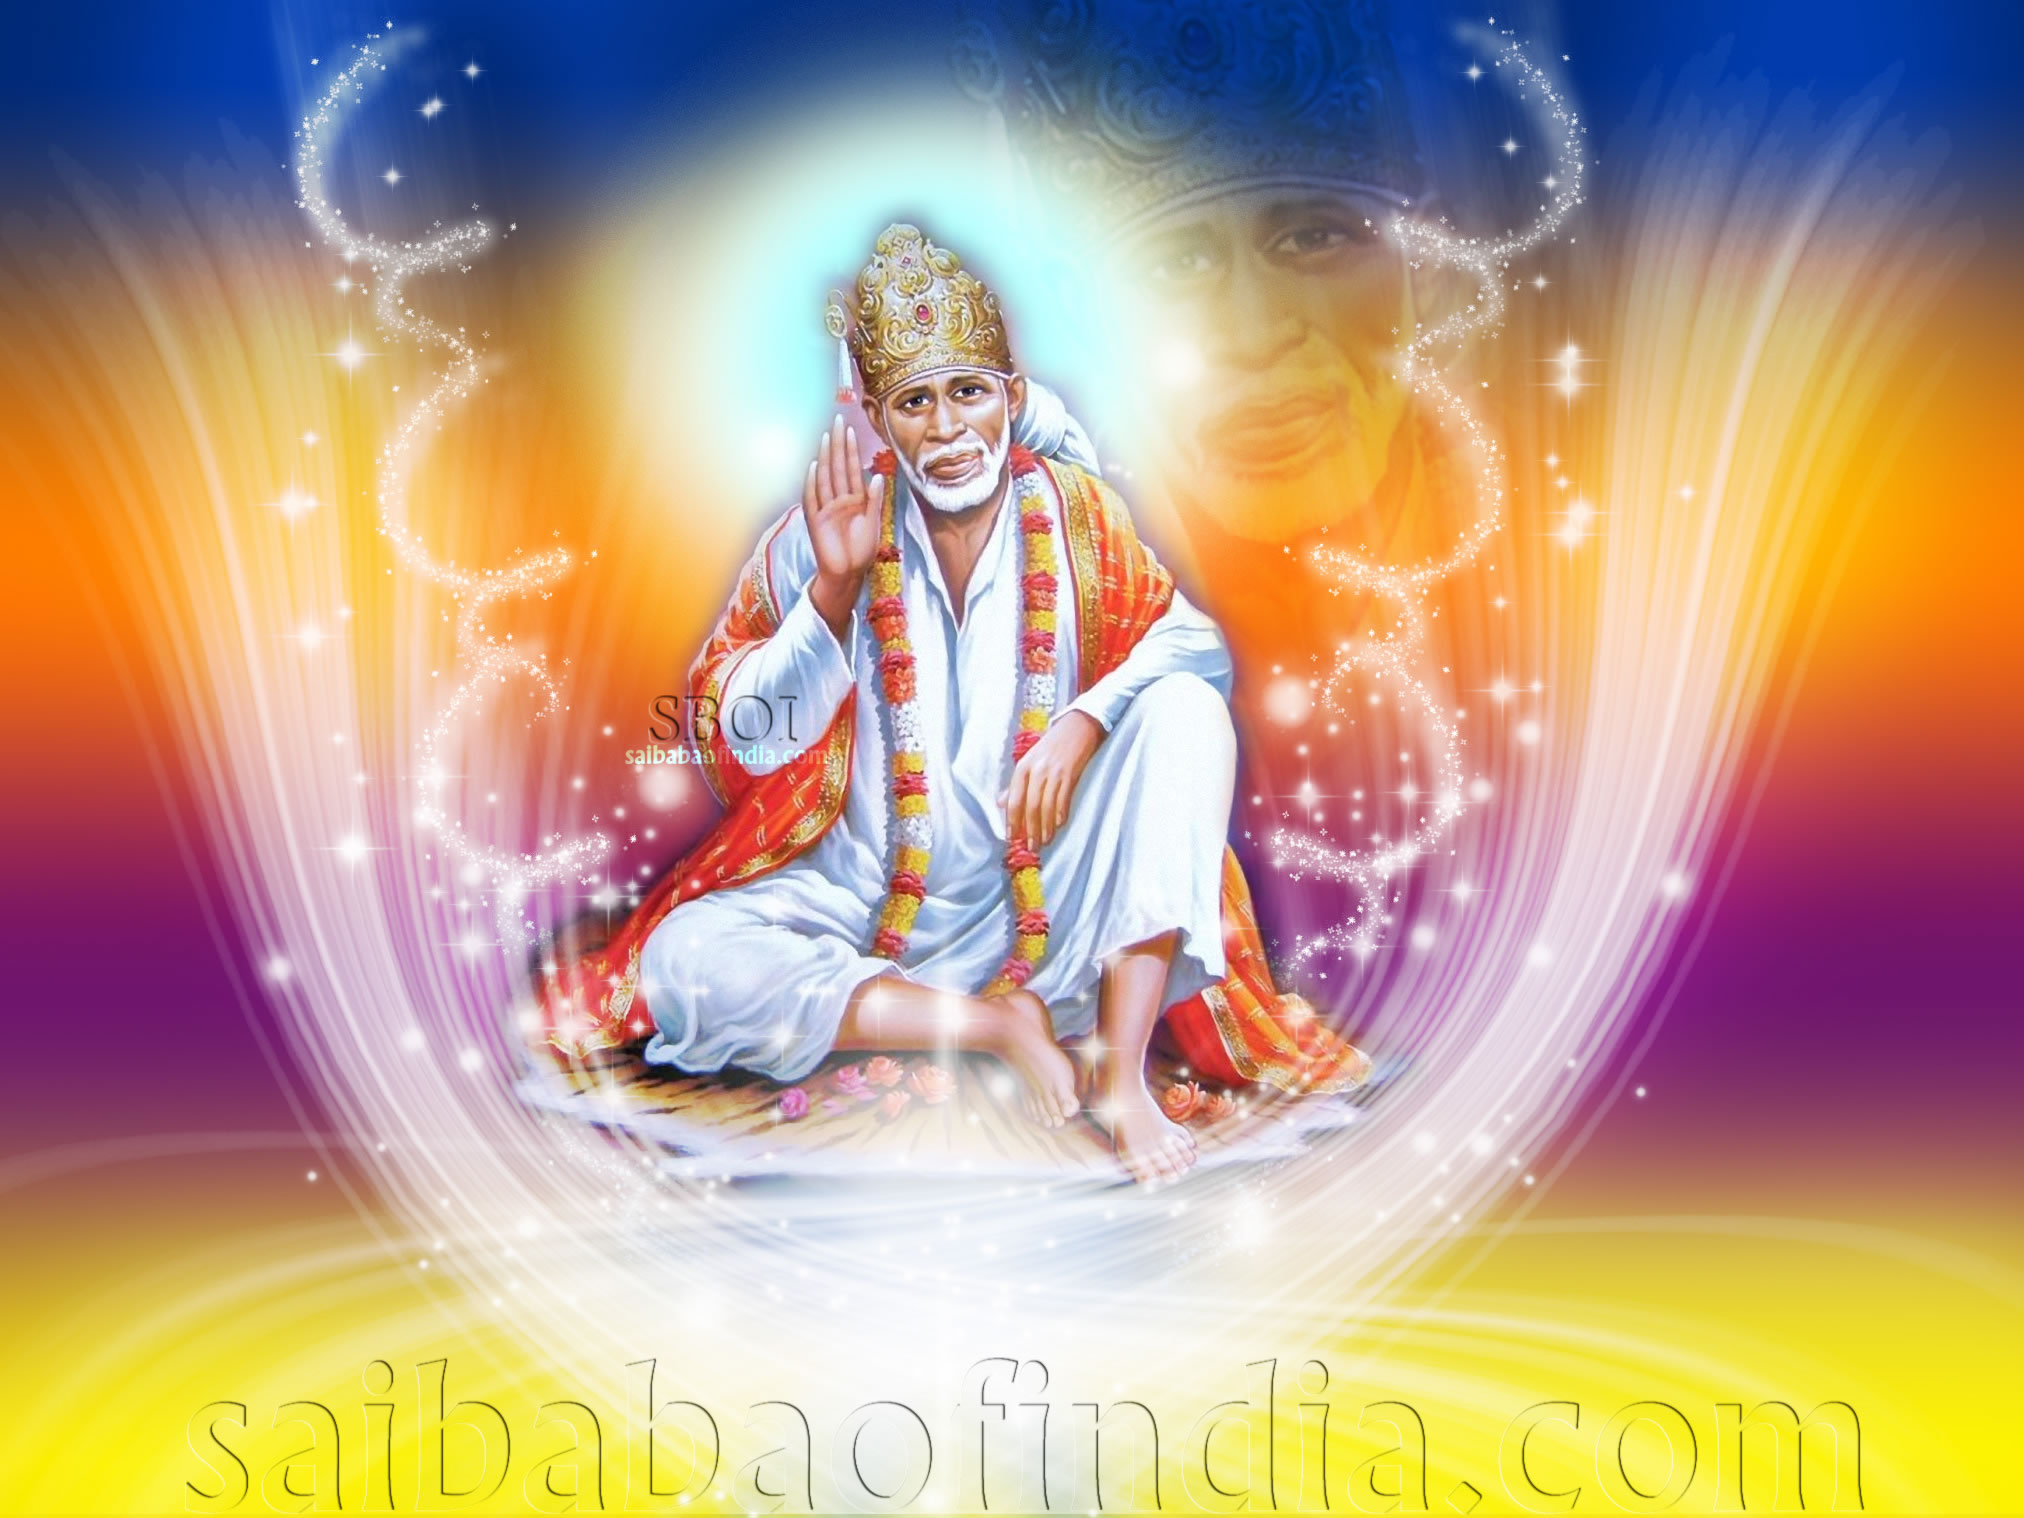 Sai Baba Animated Wallpaper For Desktop